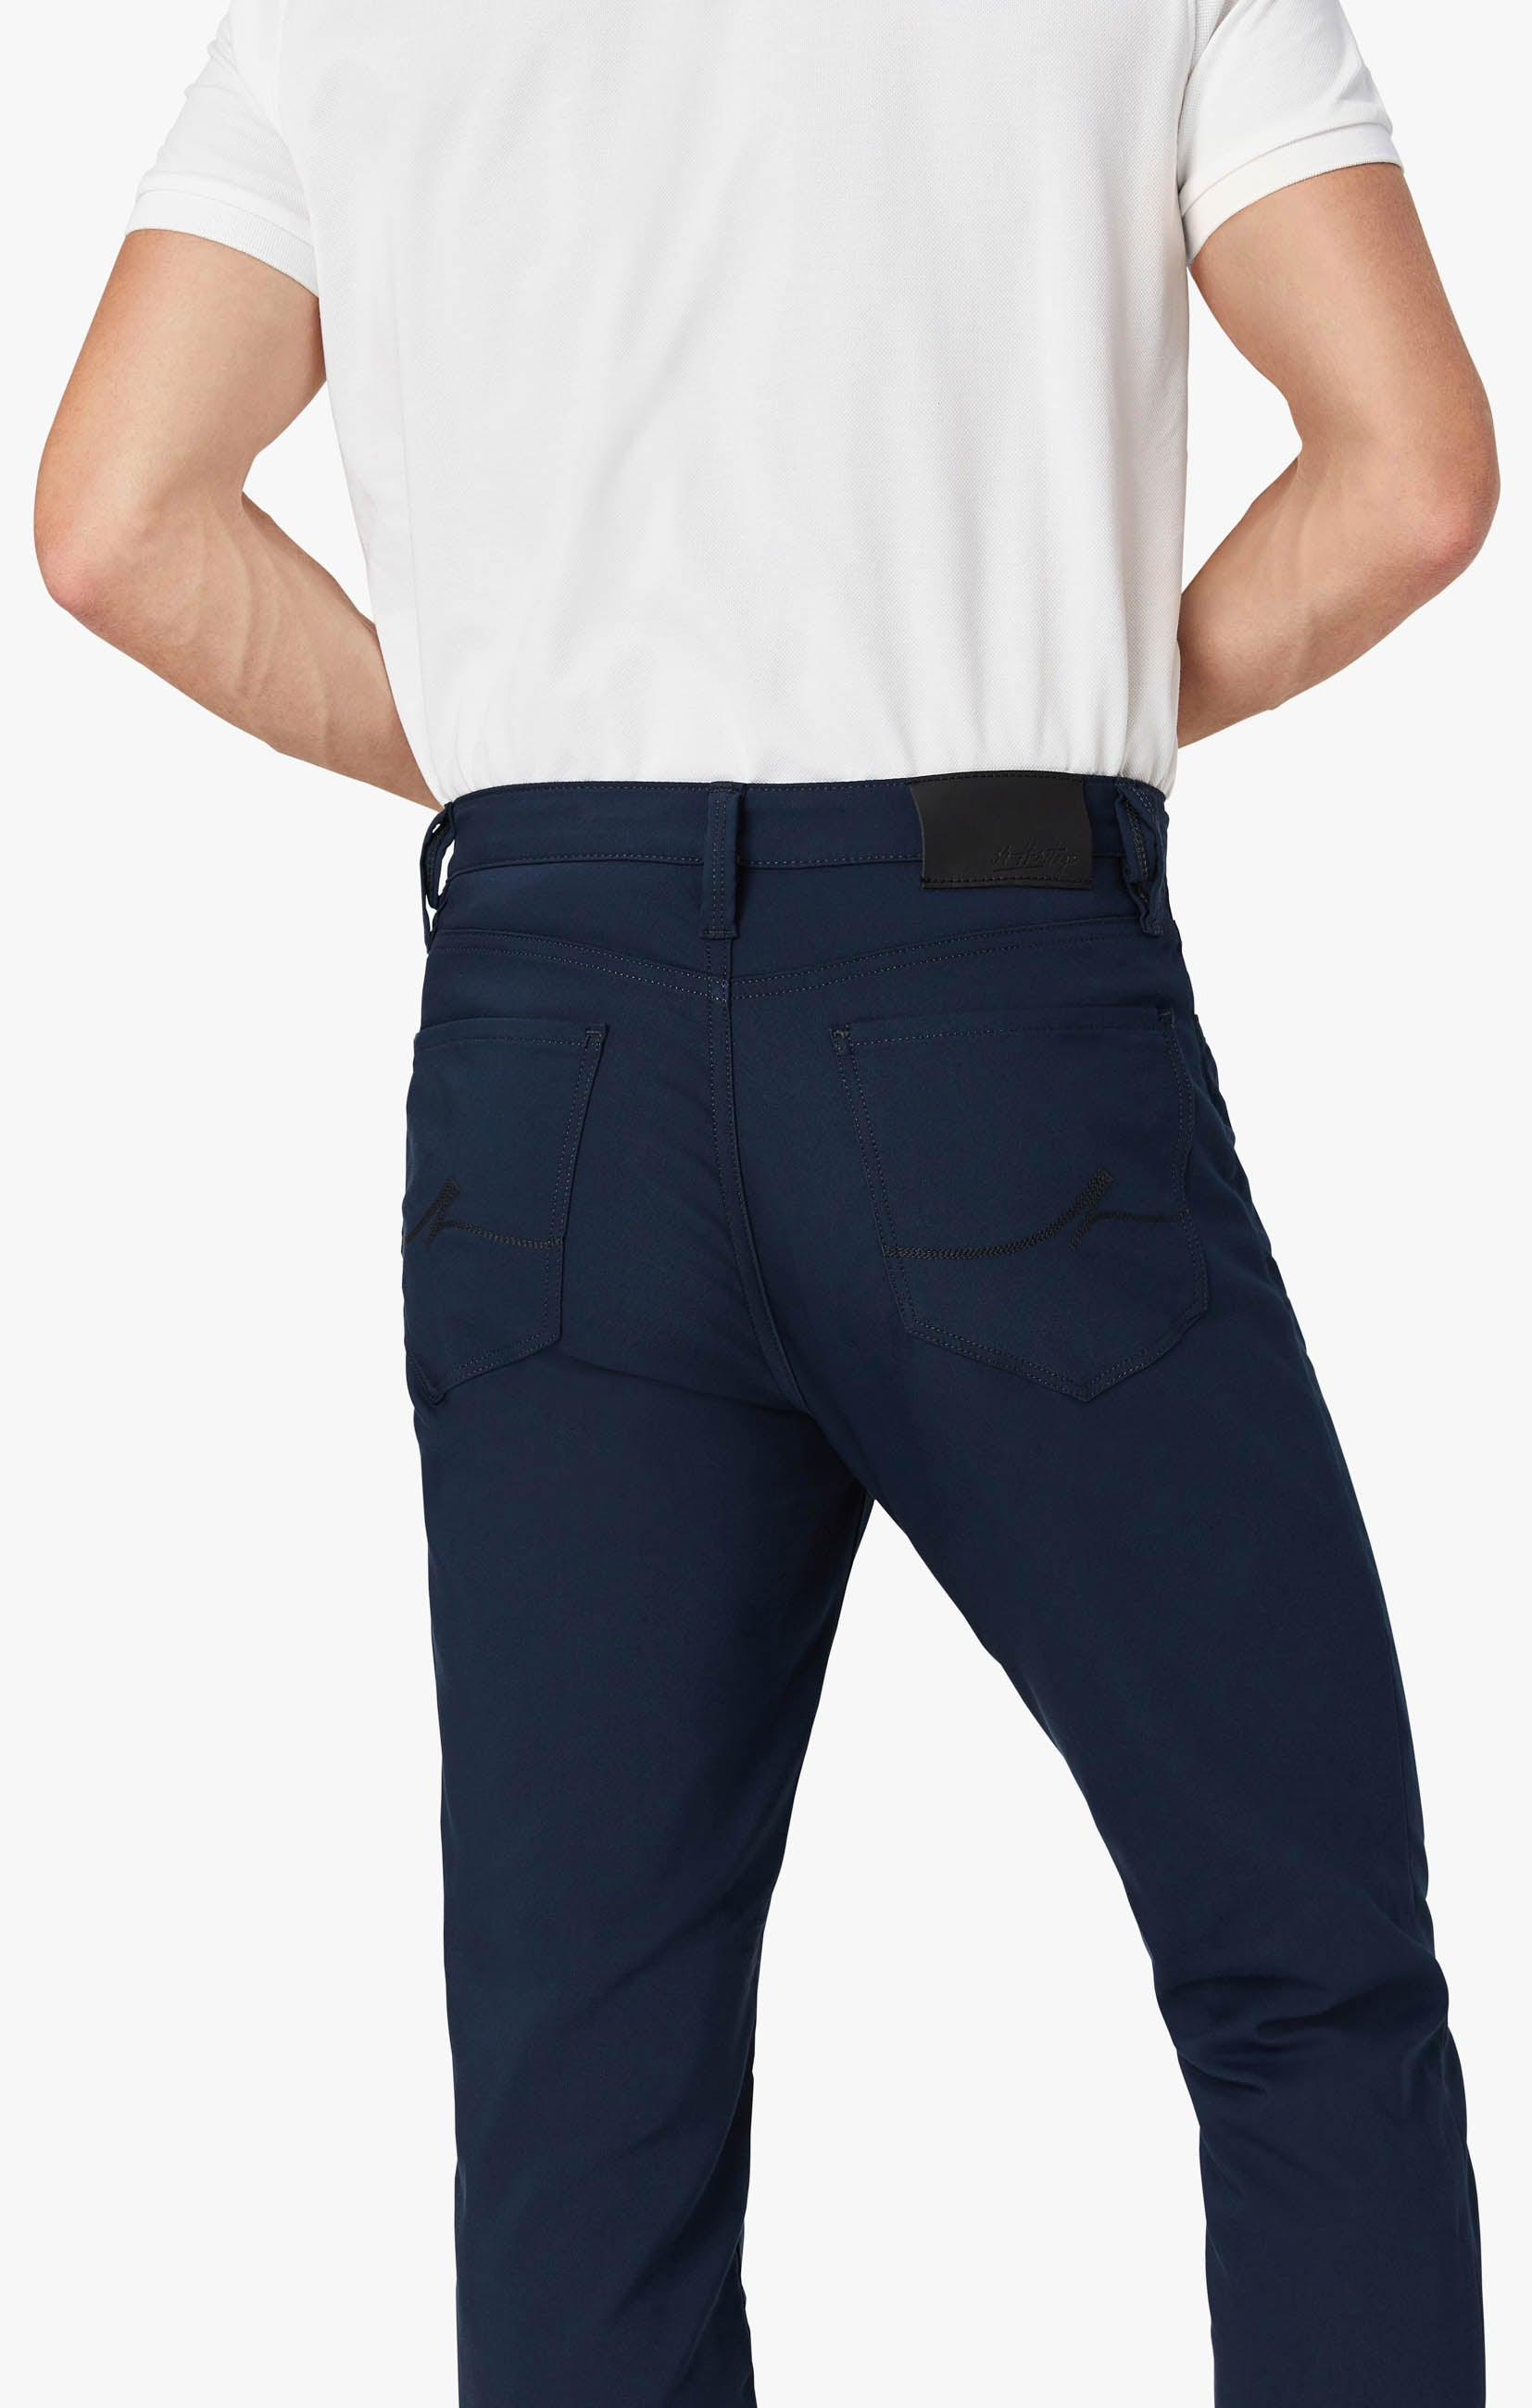 Charisma Relaxed Straight Commuter Pants In Navy Image 4